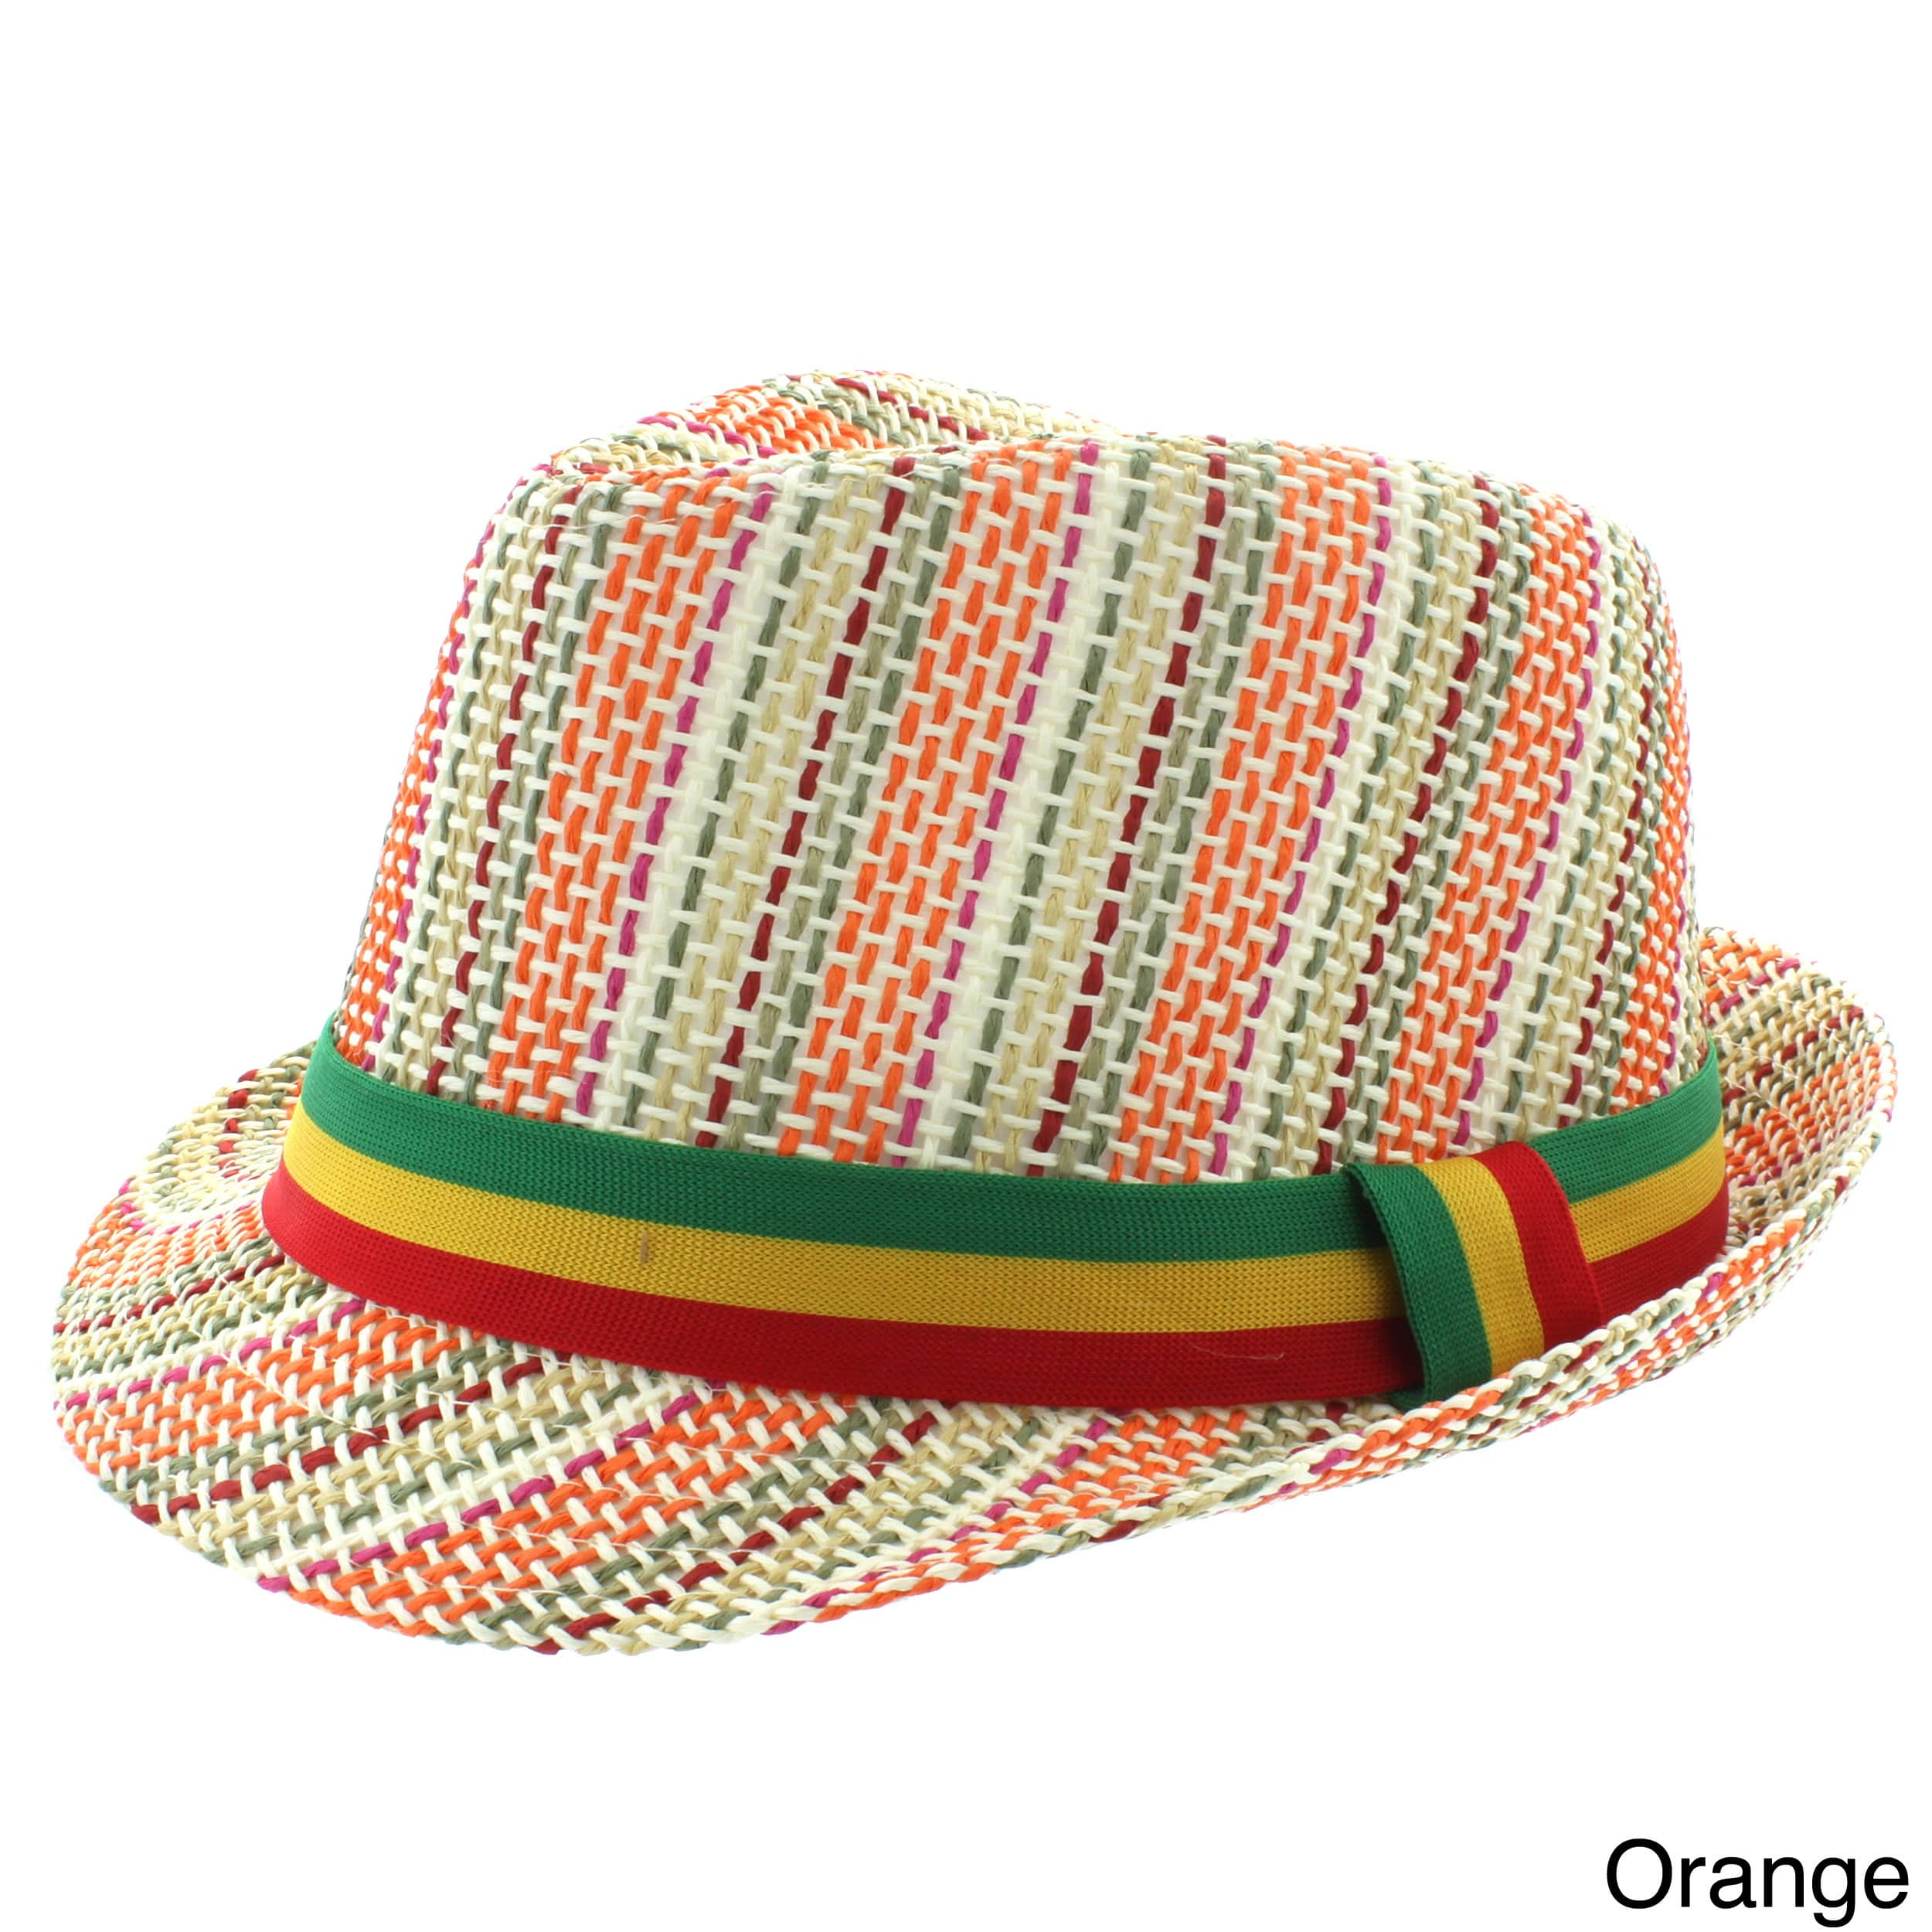 Buy Men s Hats Online at Overstock com Our Best Hats Deals 82b9b8f2ae35